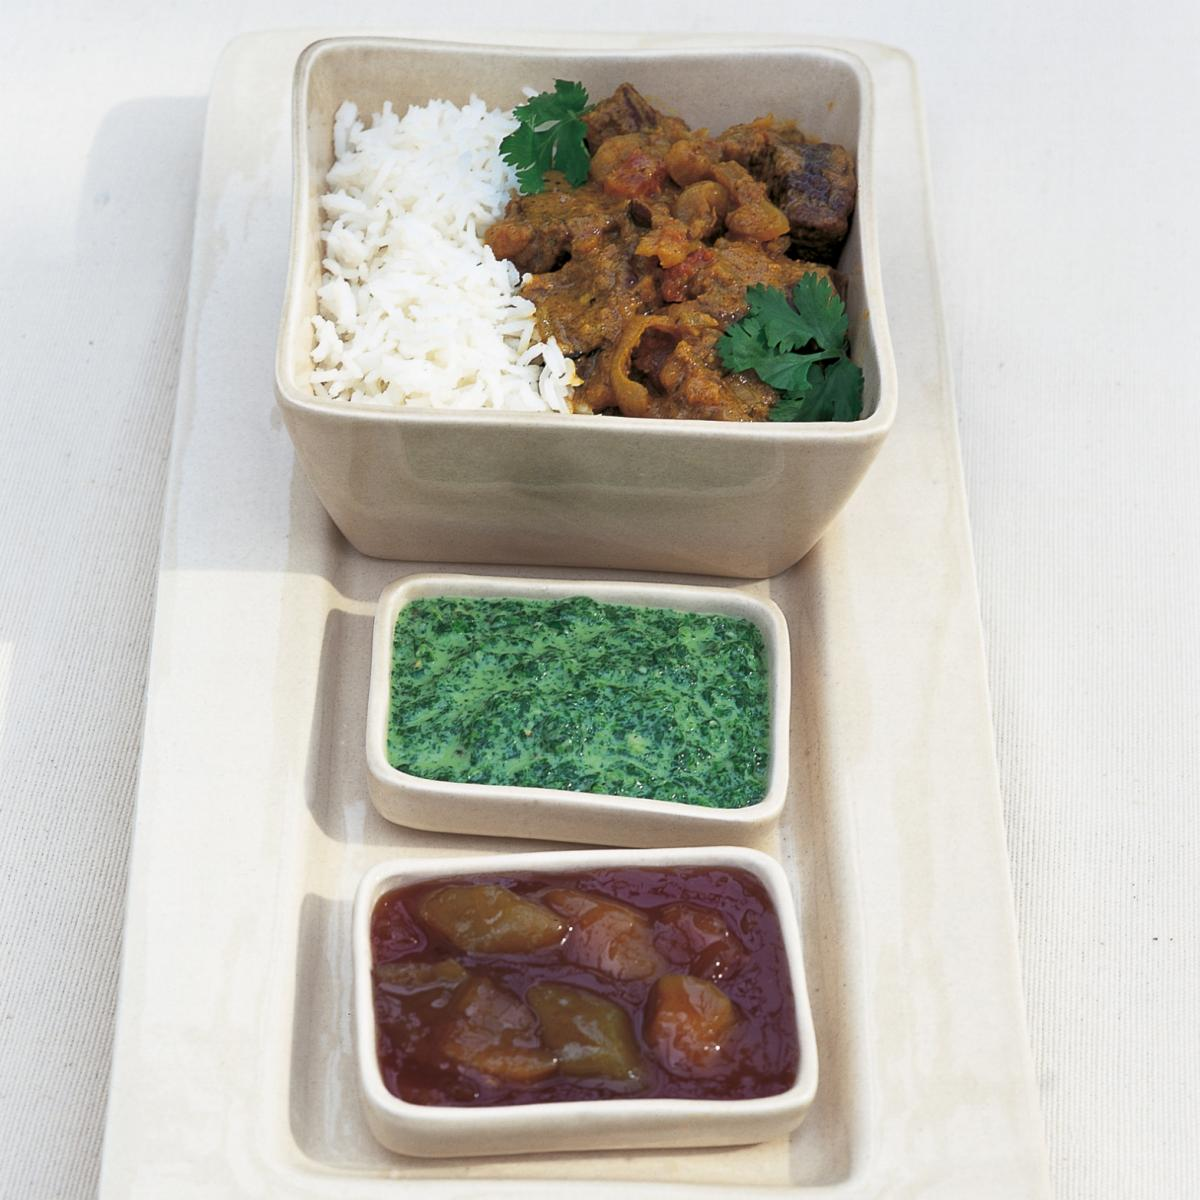 Indian recipes delia online a picture of delias beef curry dopiaza recipe forumfinder Images